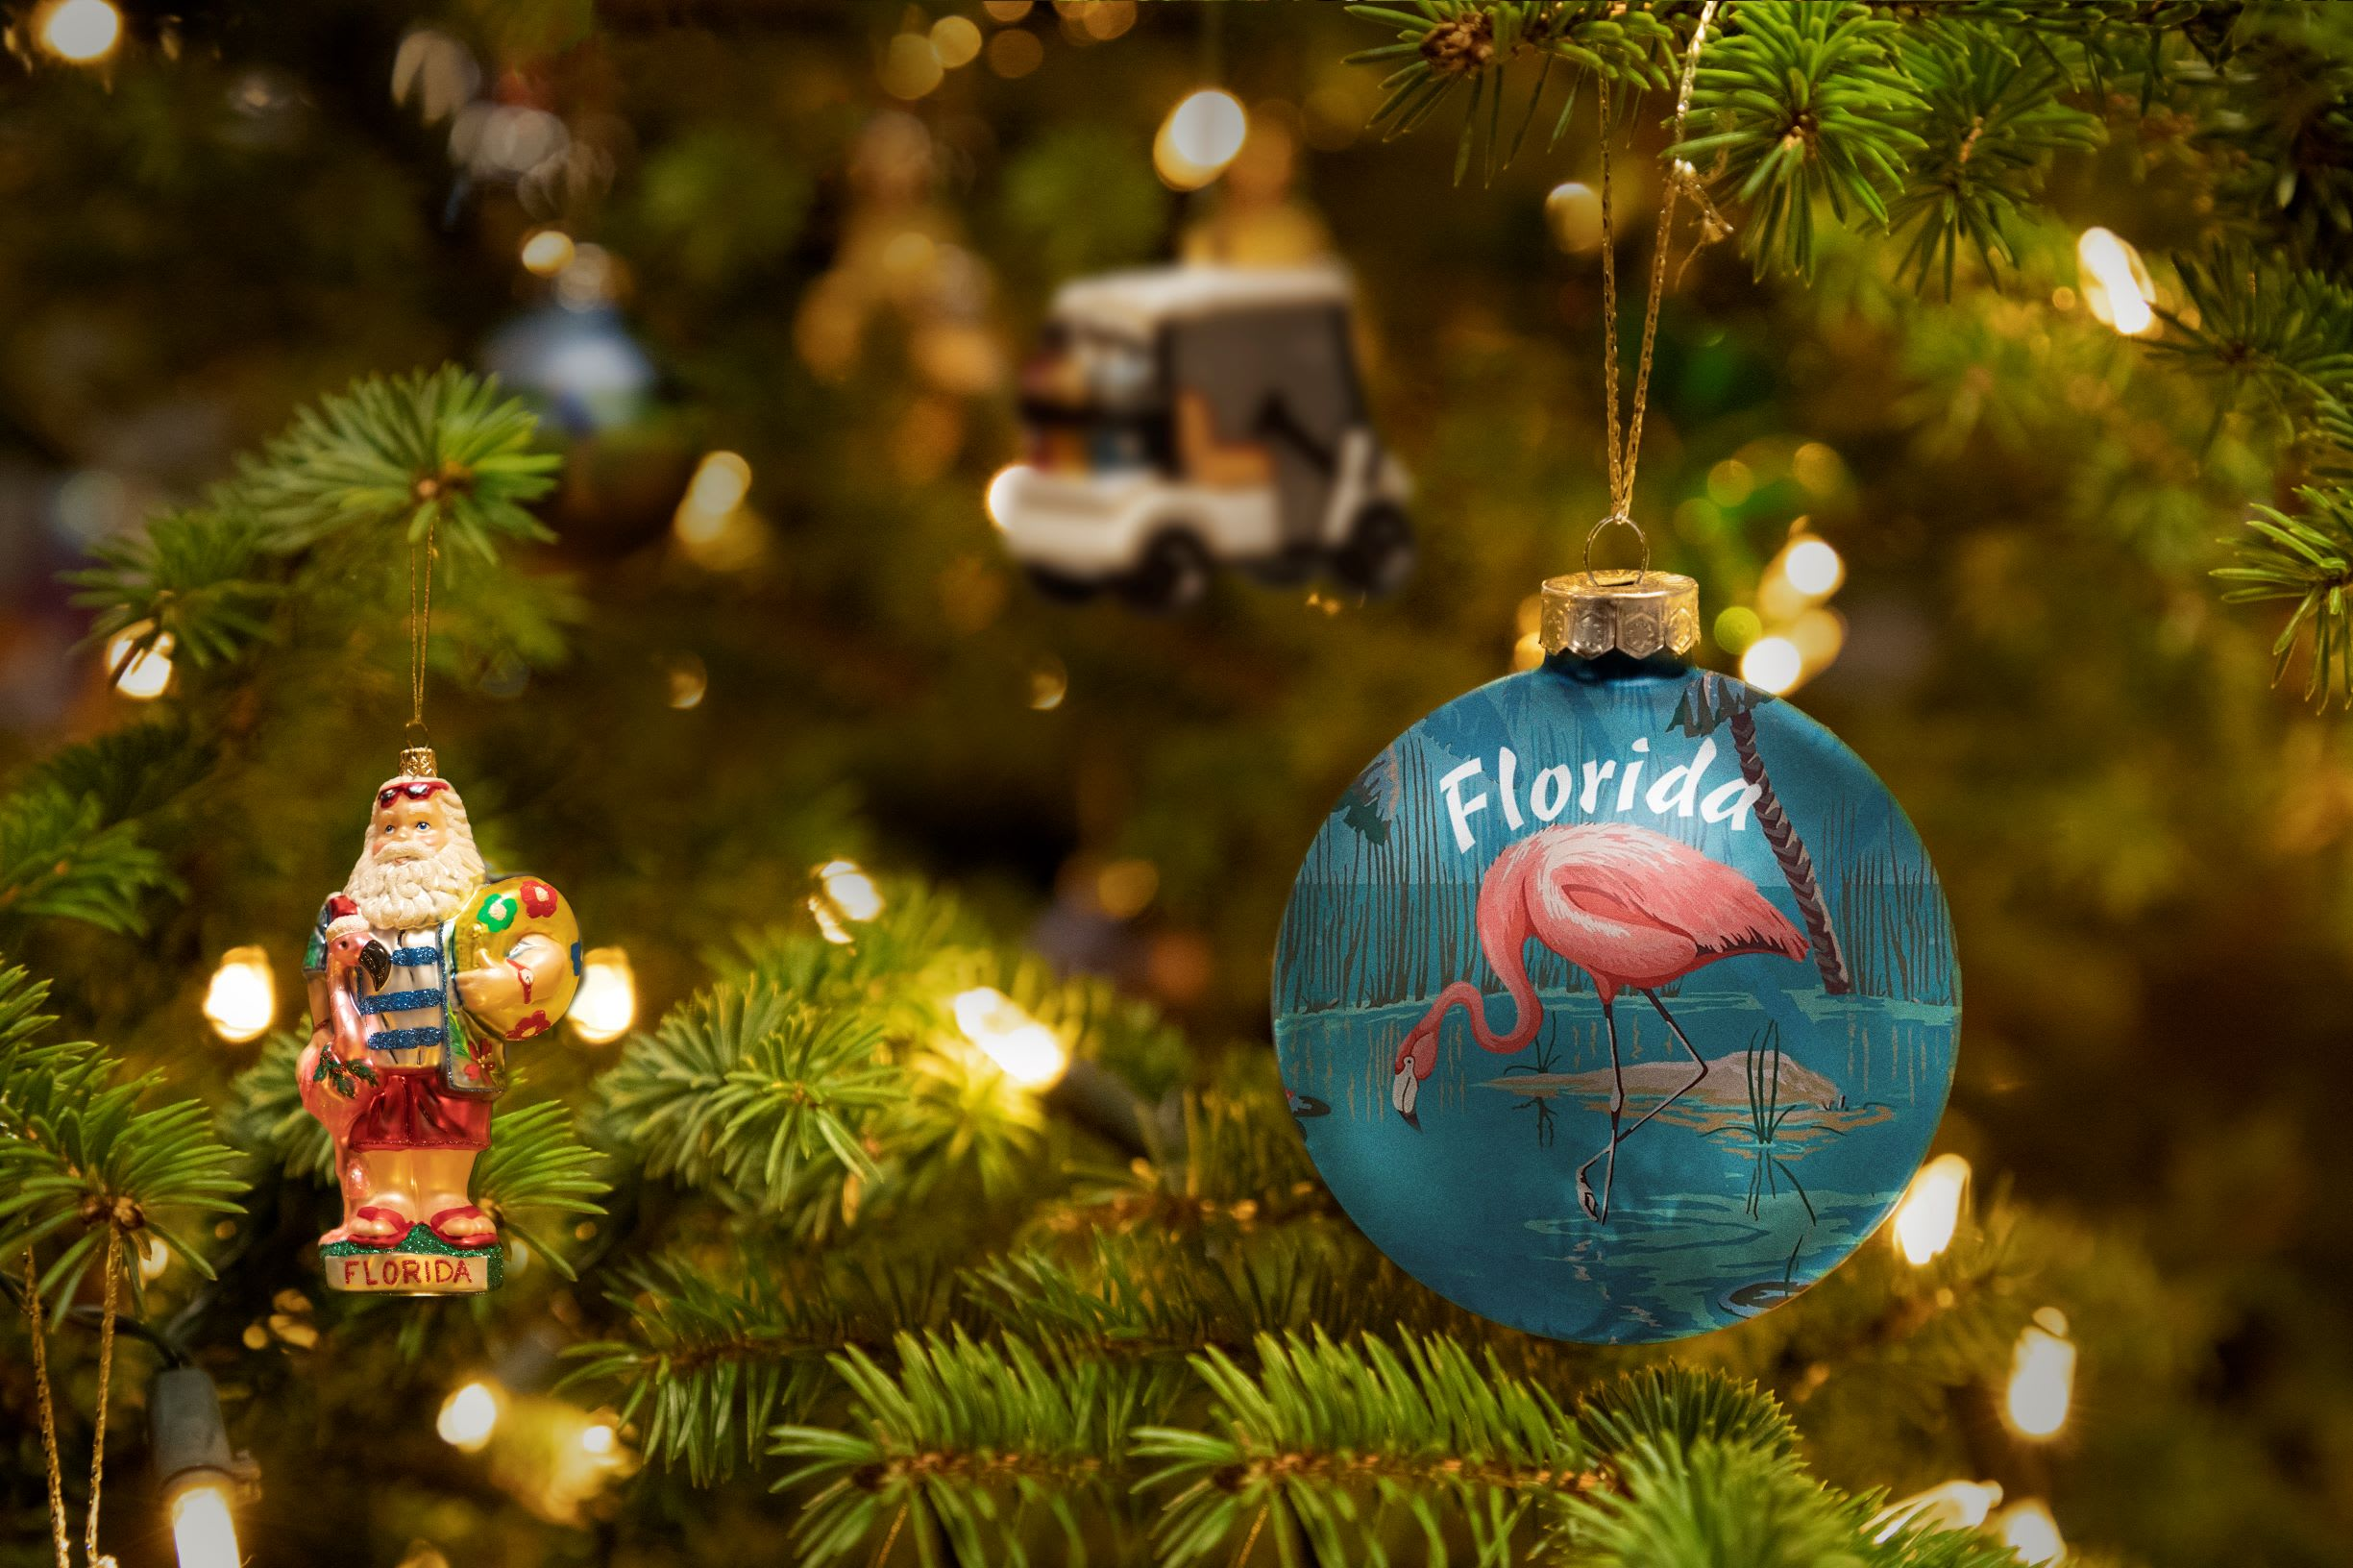 a Christmas tree up close with a large blue bauble in the foreground that reads 'Florida' and has a pink pelican on it